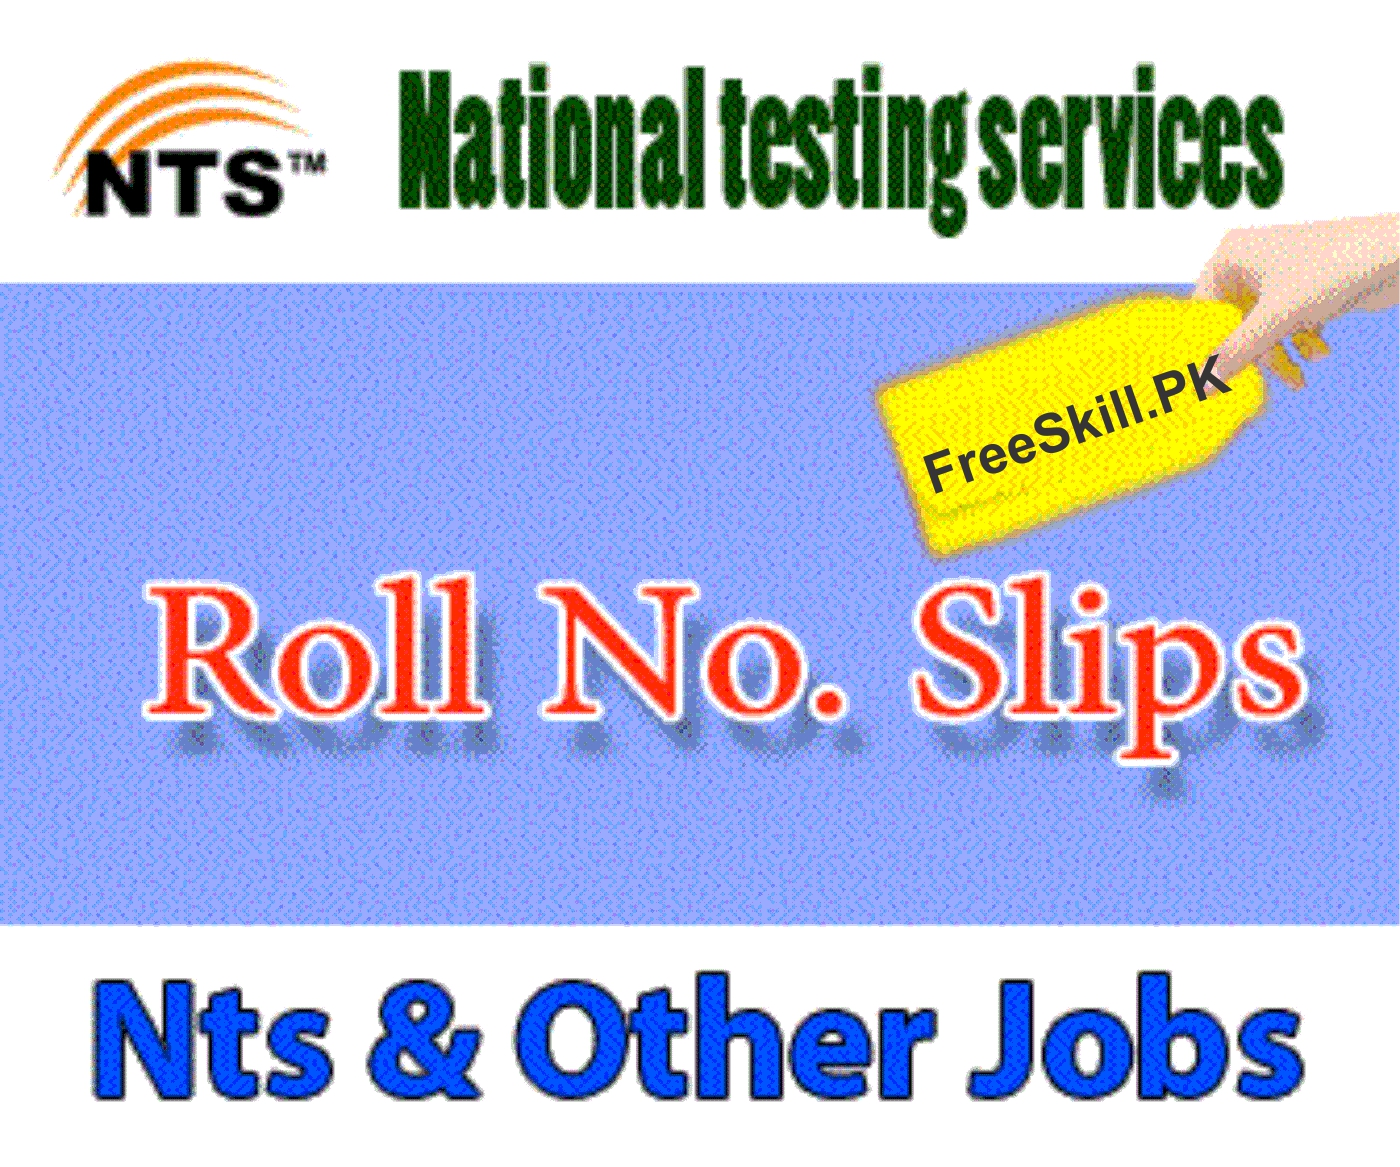 NTS Roll Number Slip 2021 Download Now